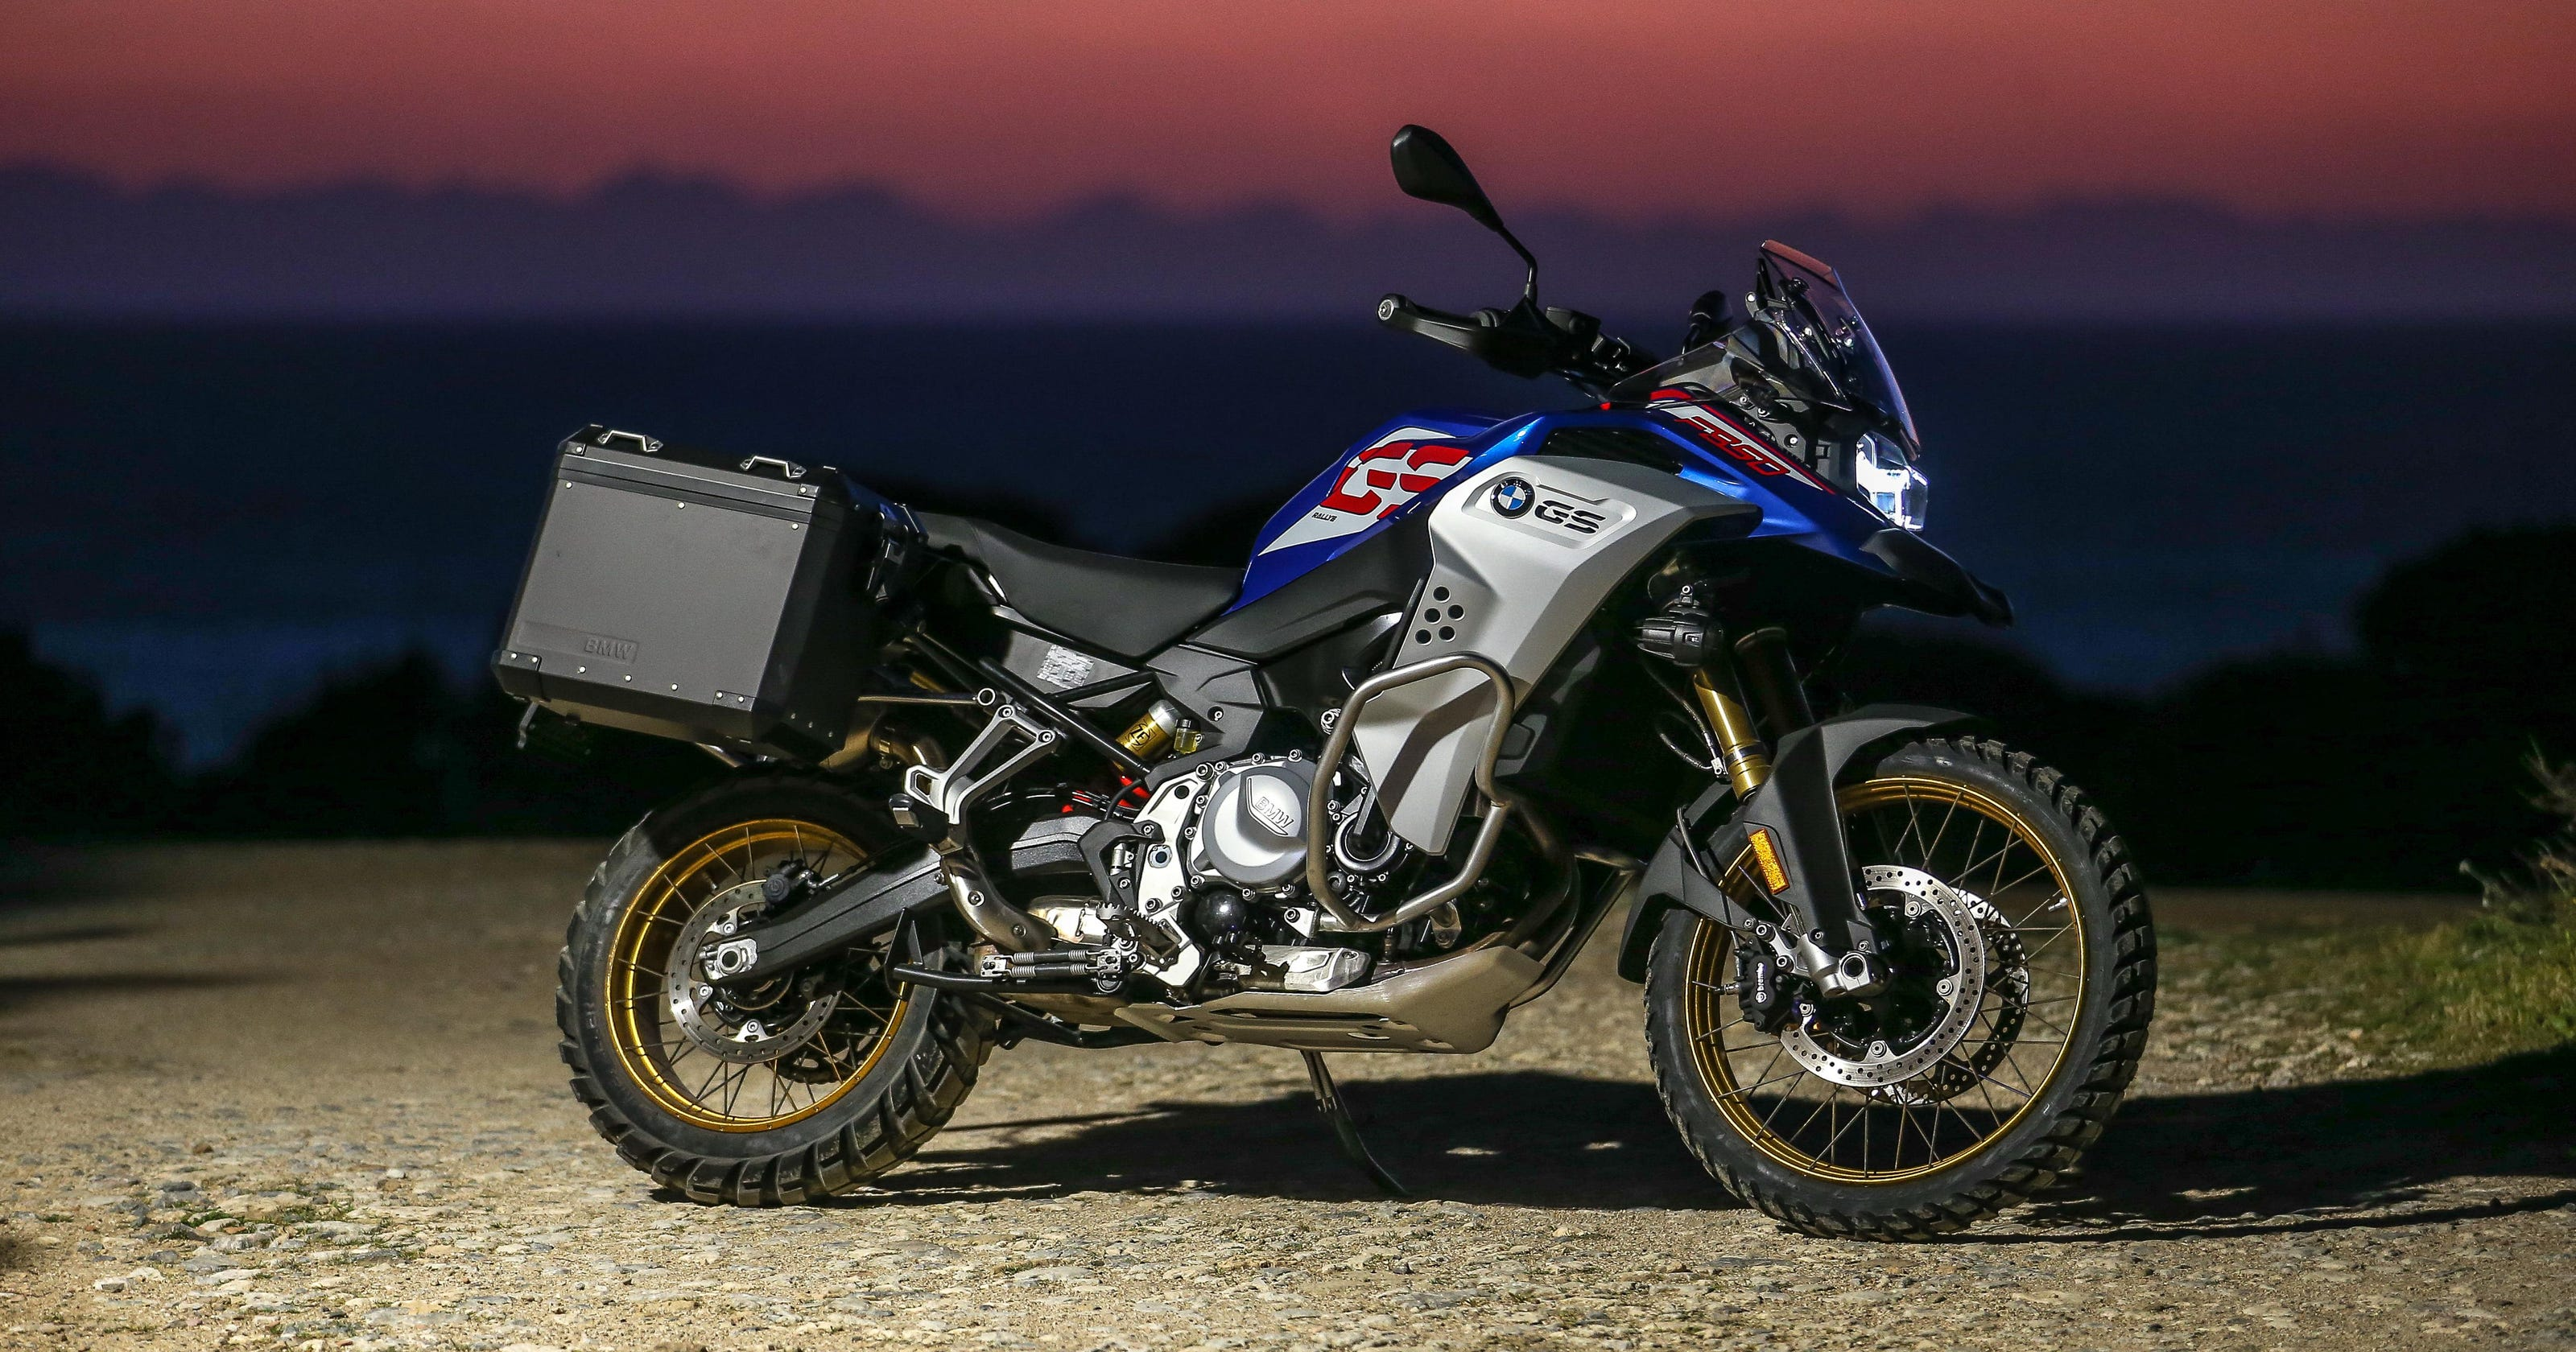 BMW and KTM adventure bikes are very different, but meet at